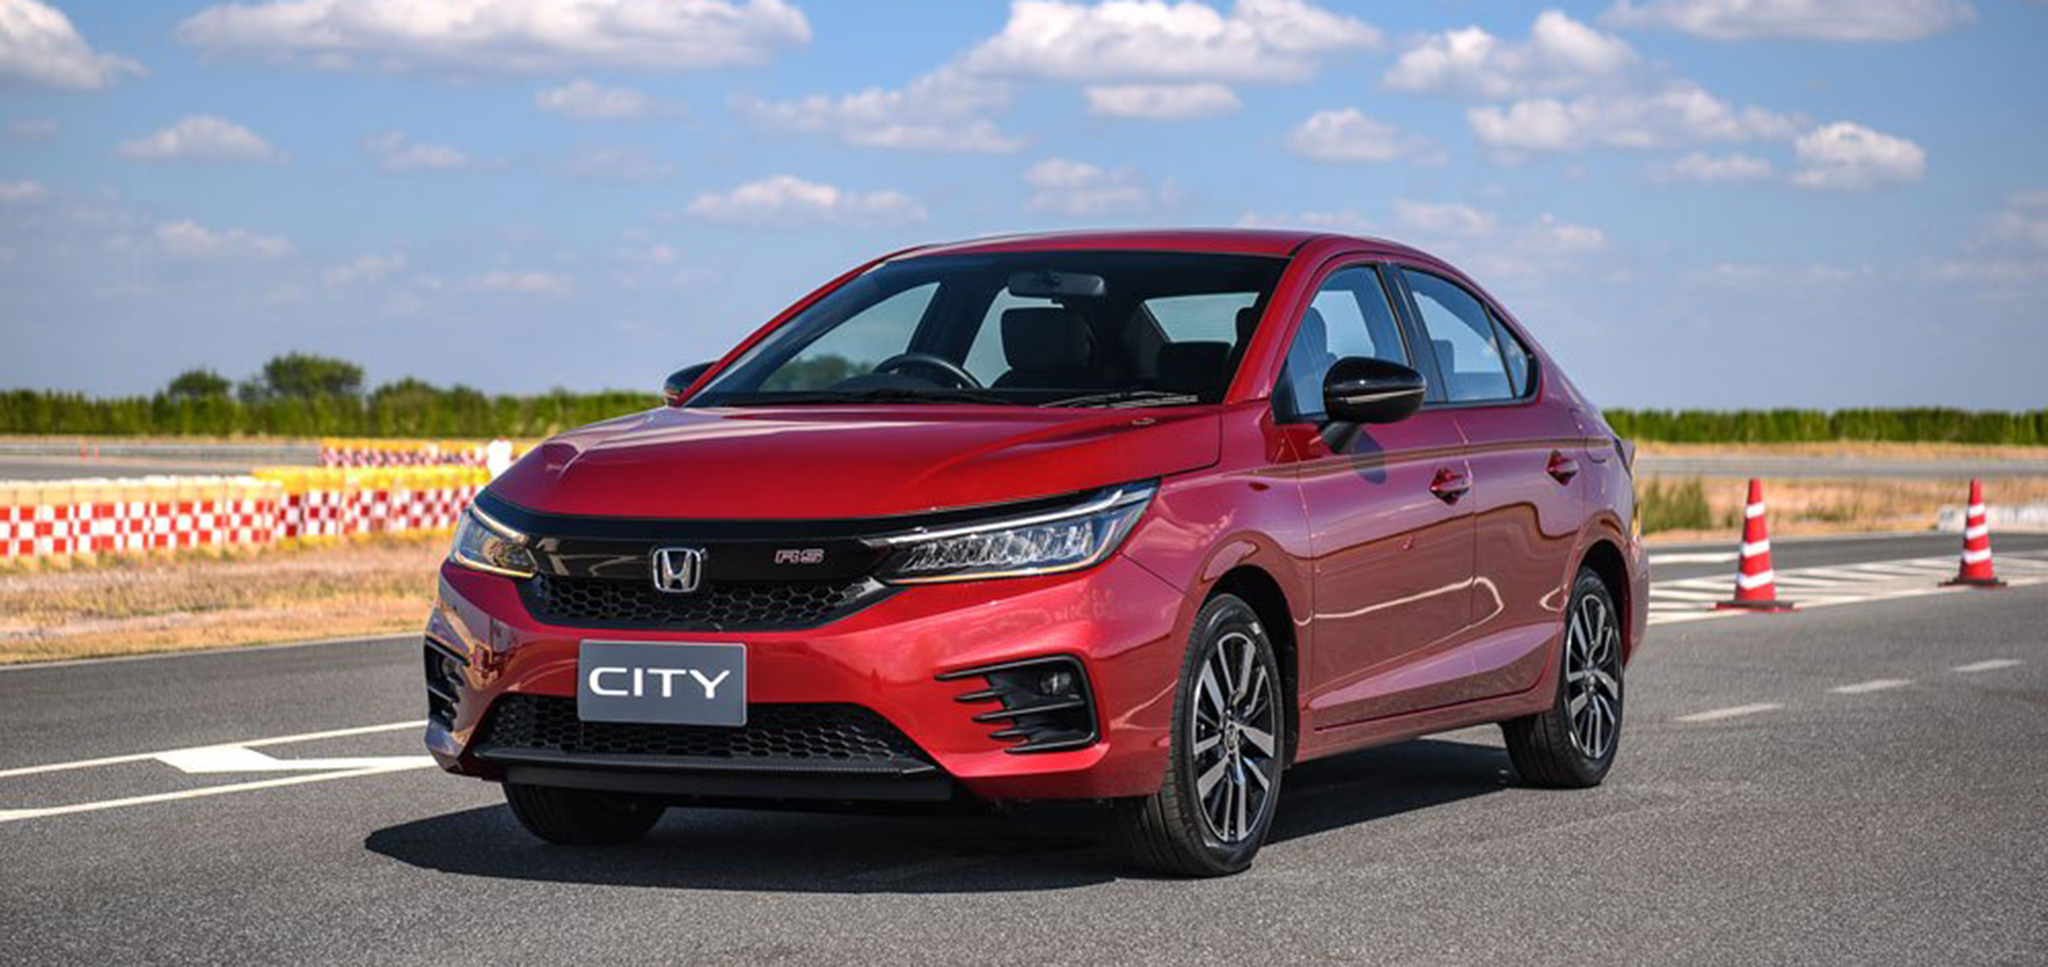 05-honda-city-rs-2020-group-test-official